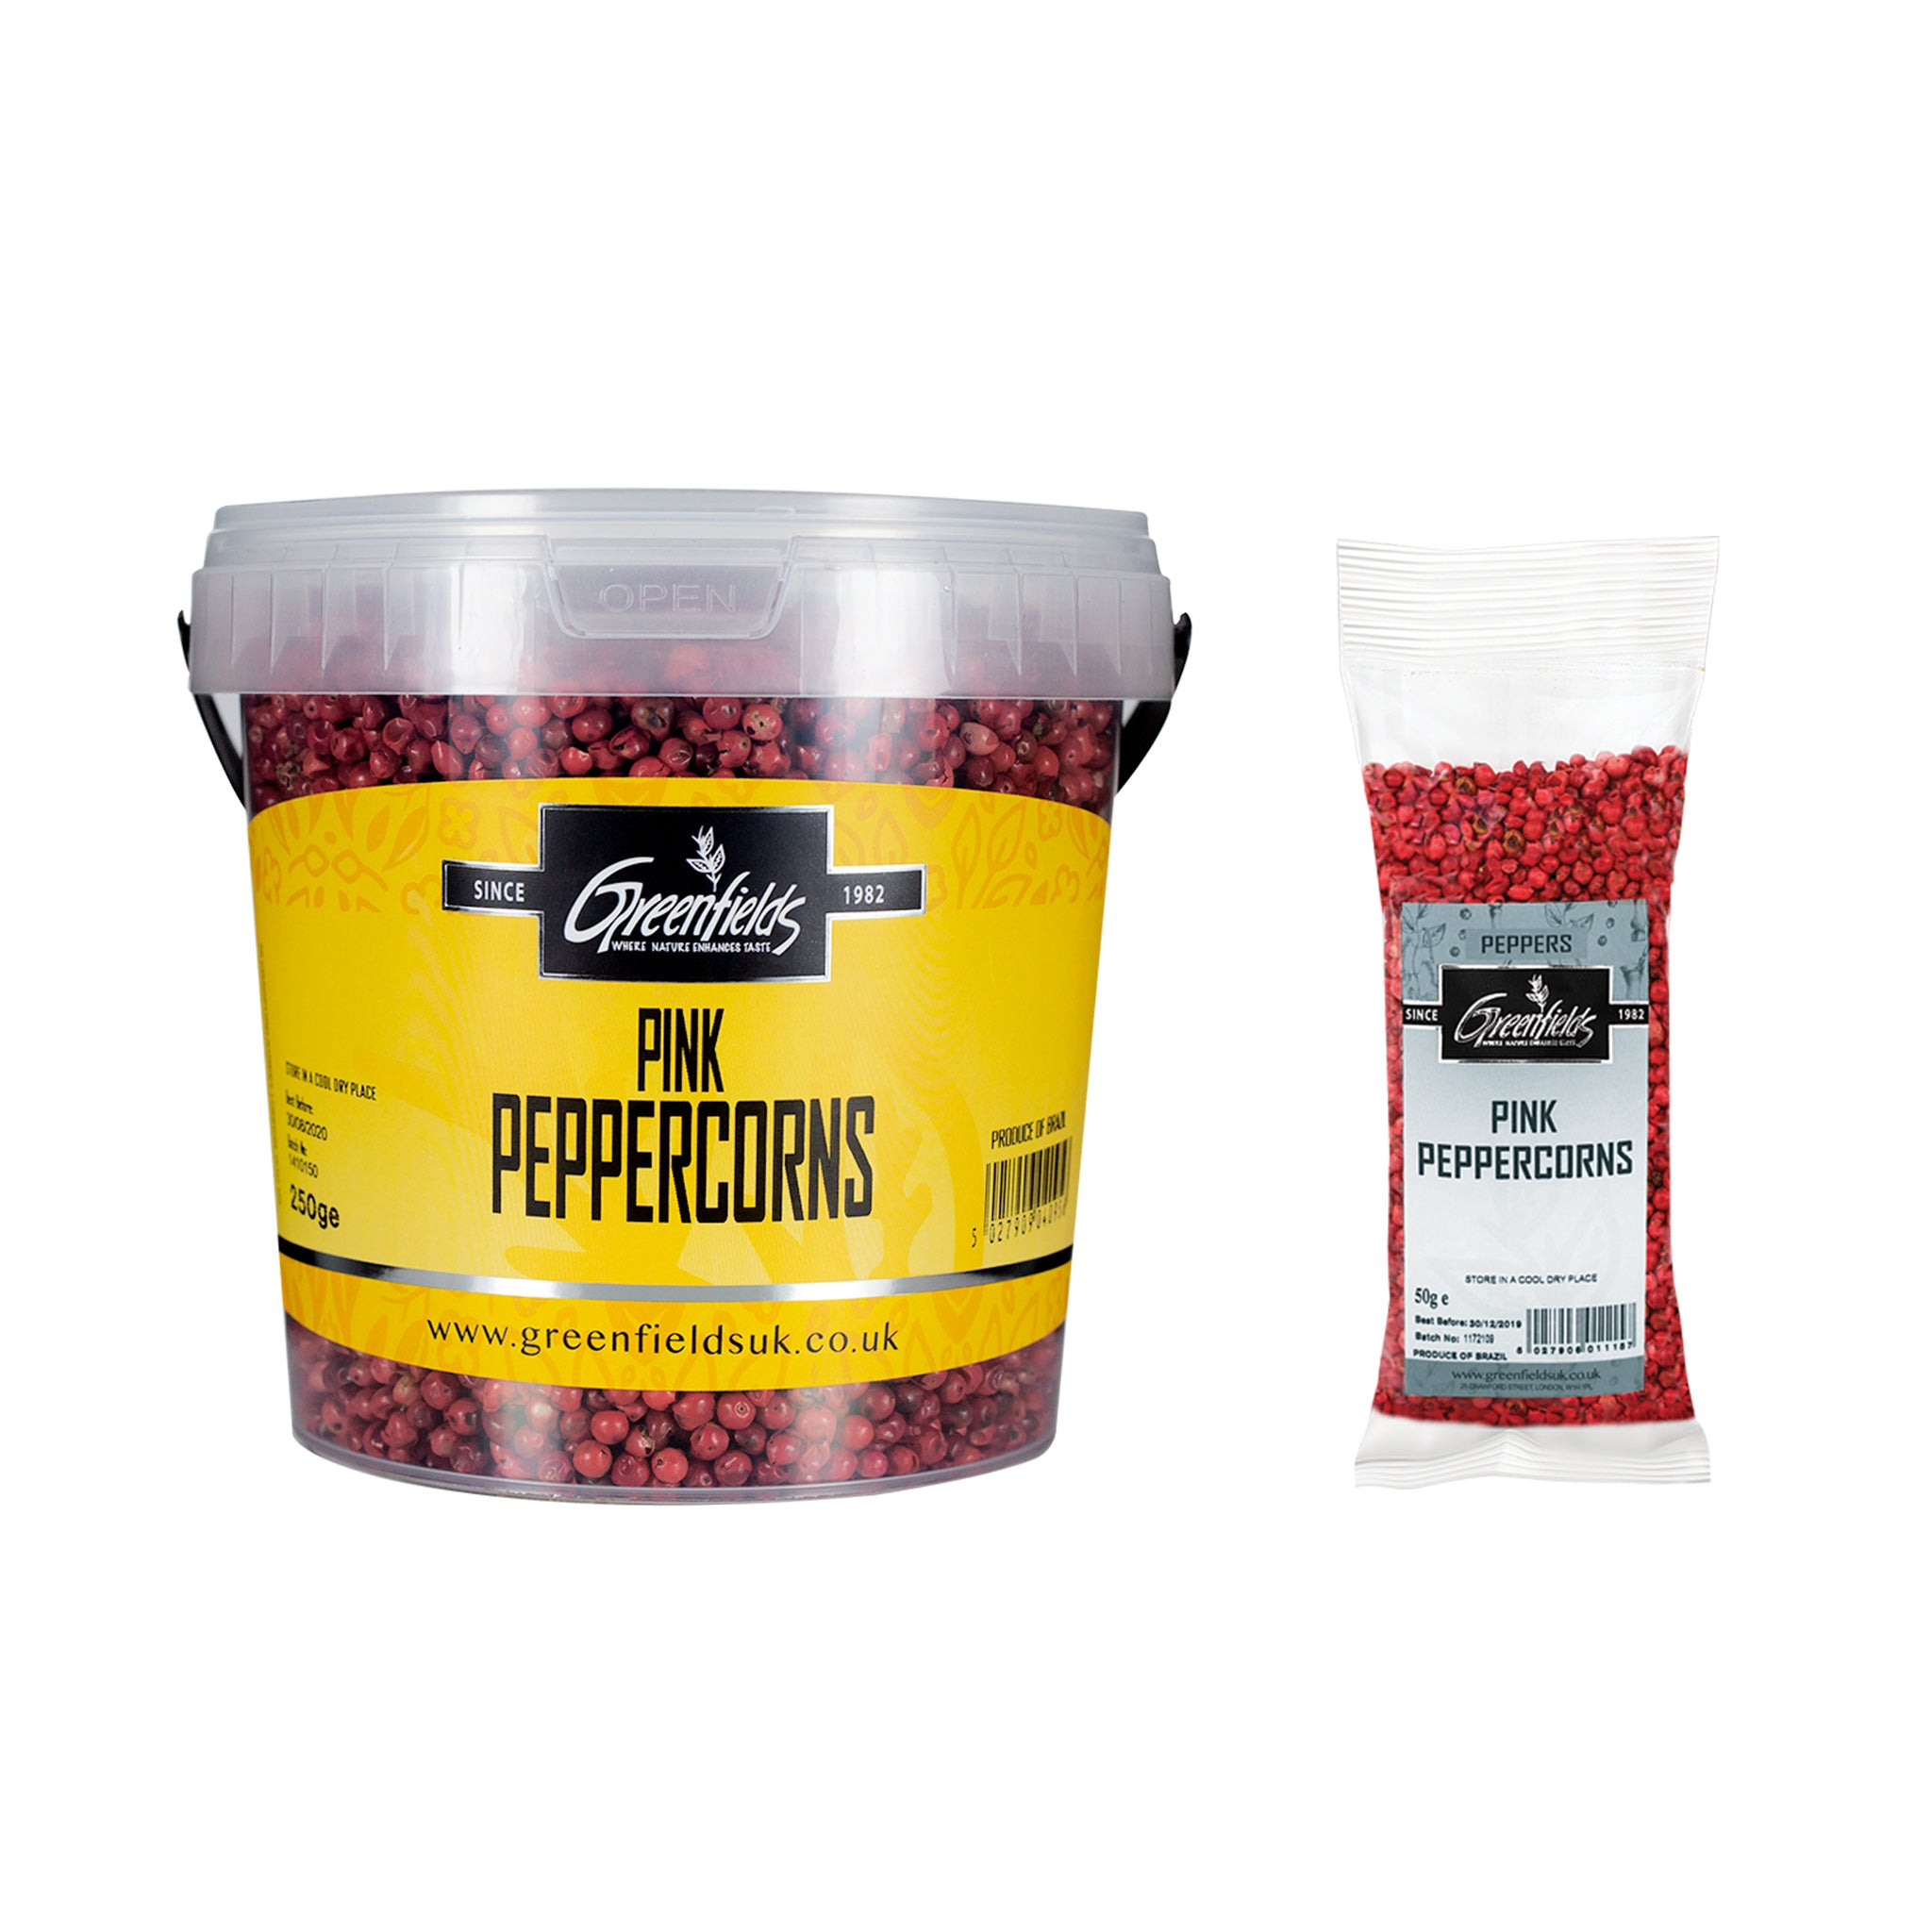 Greenfields Pink Peppercorns